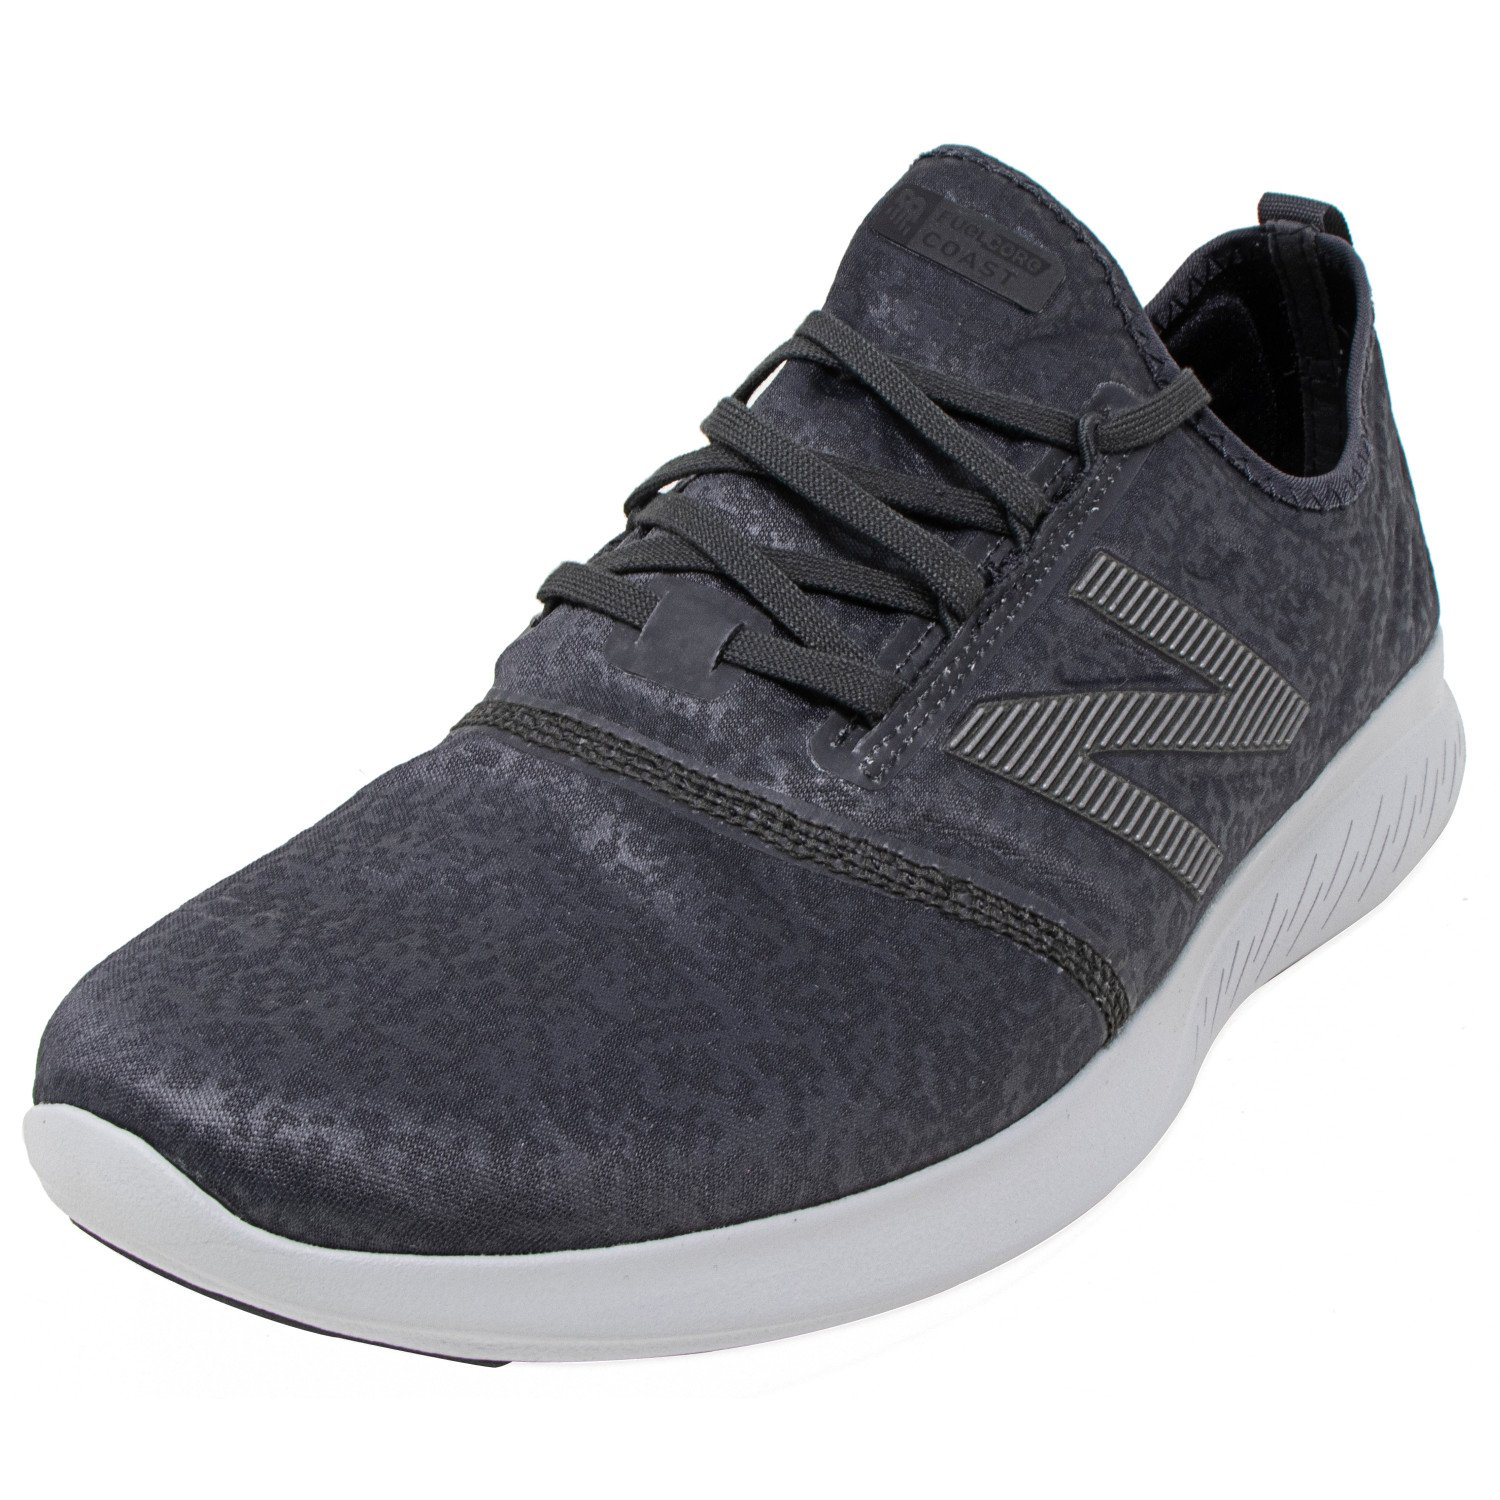 Préstamo de dinero Real camión  New Balance Men's Mcstl Rb4 Ankle-High Running - 12M | Walmart Canada